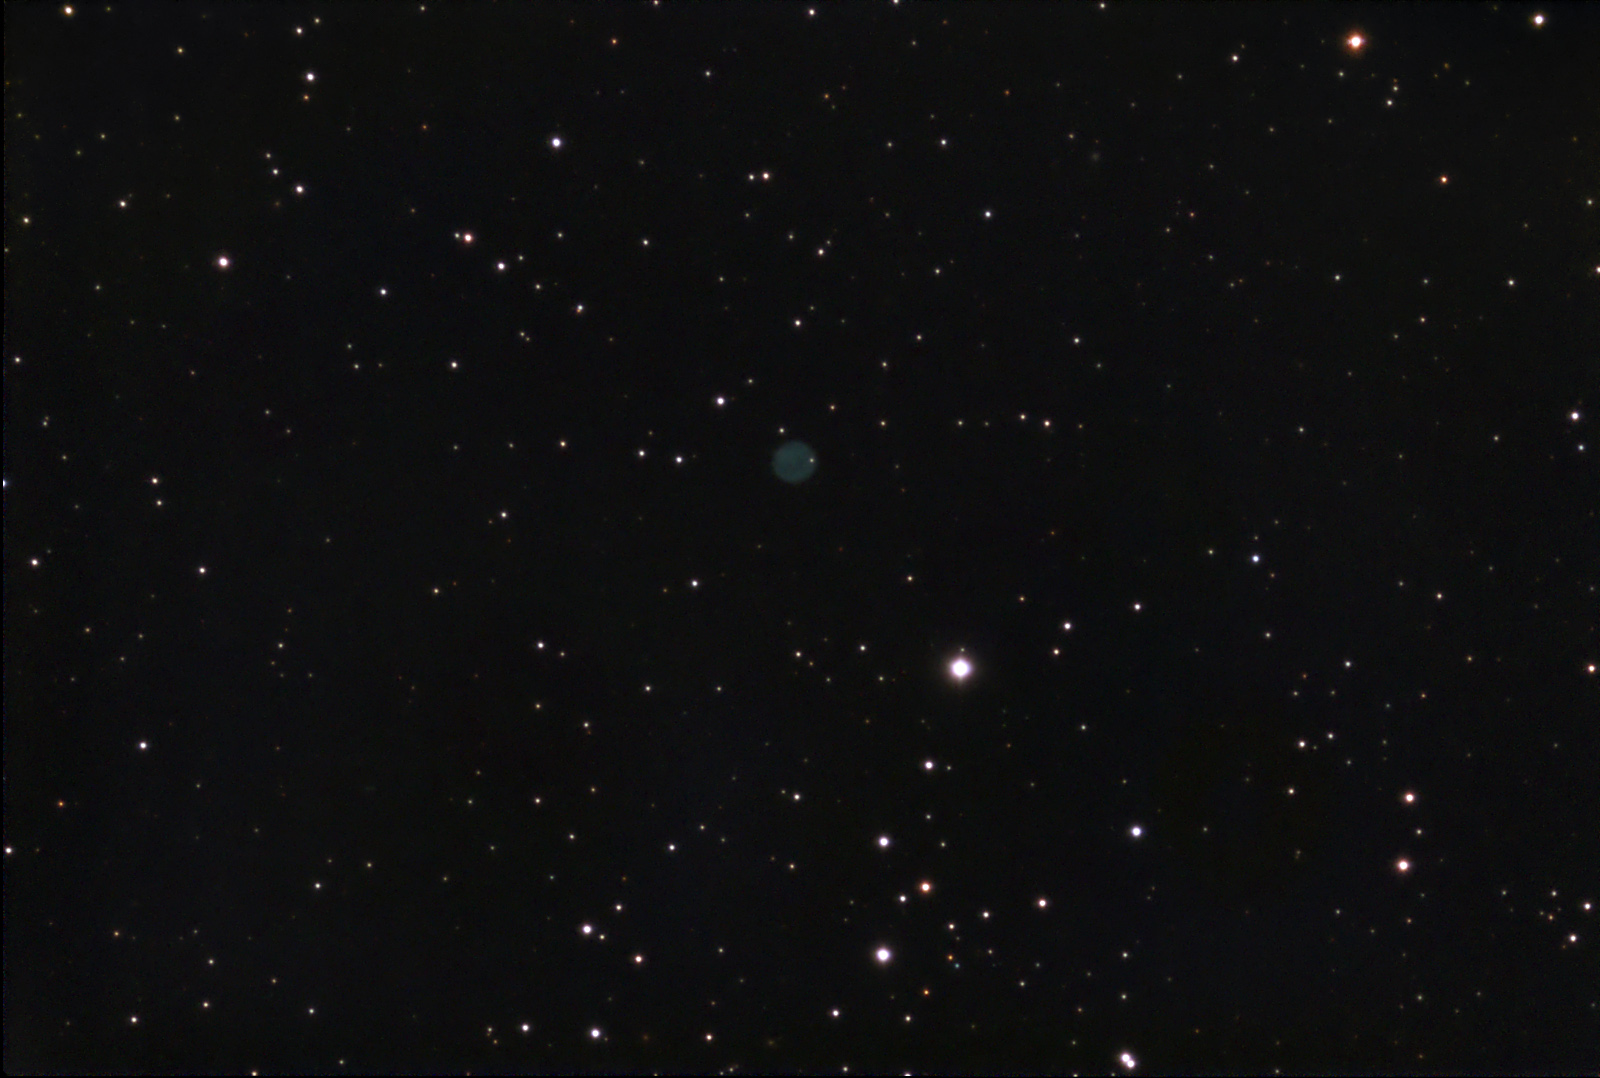 Abell 50—Planetary Nebula in Draco (NGC 6742, PK 78+18.1)